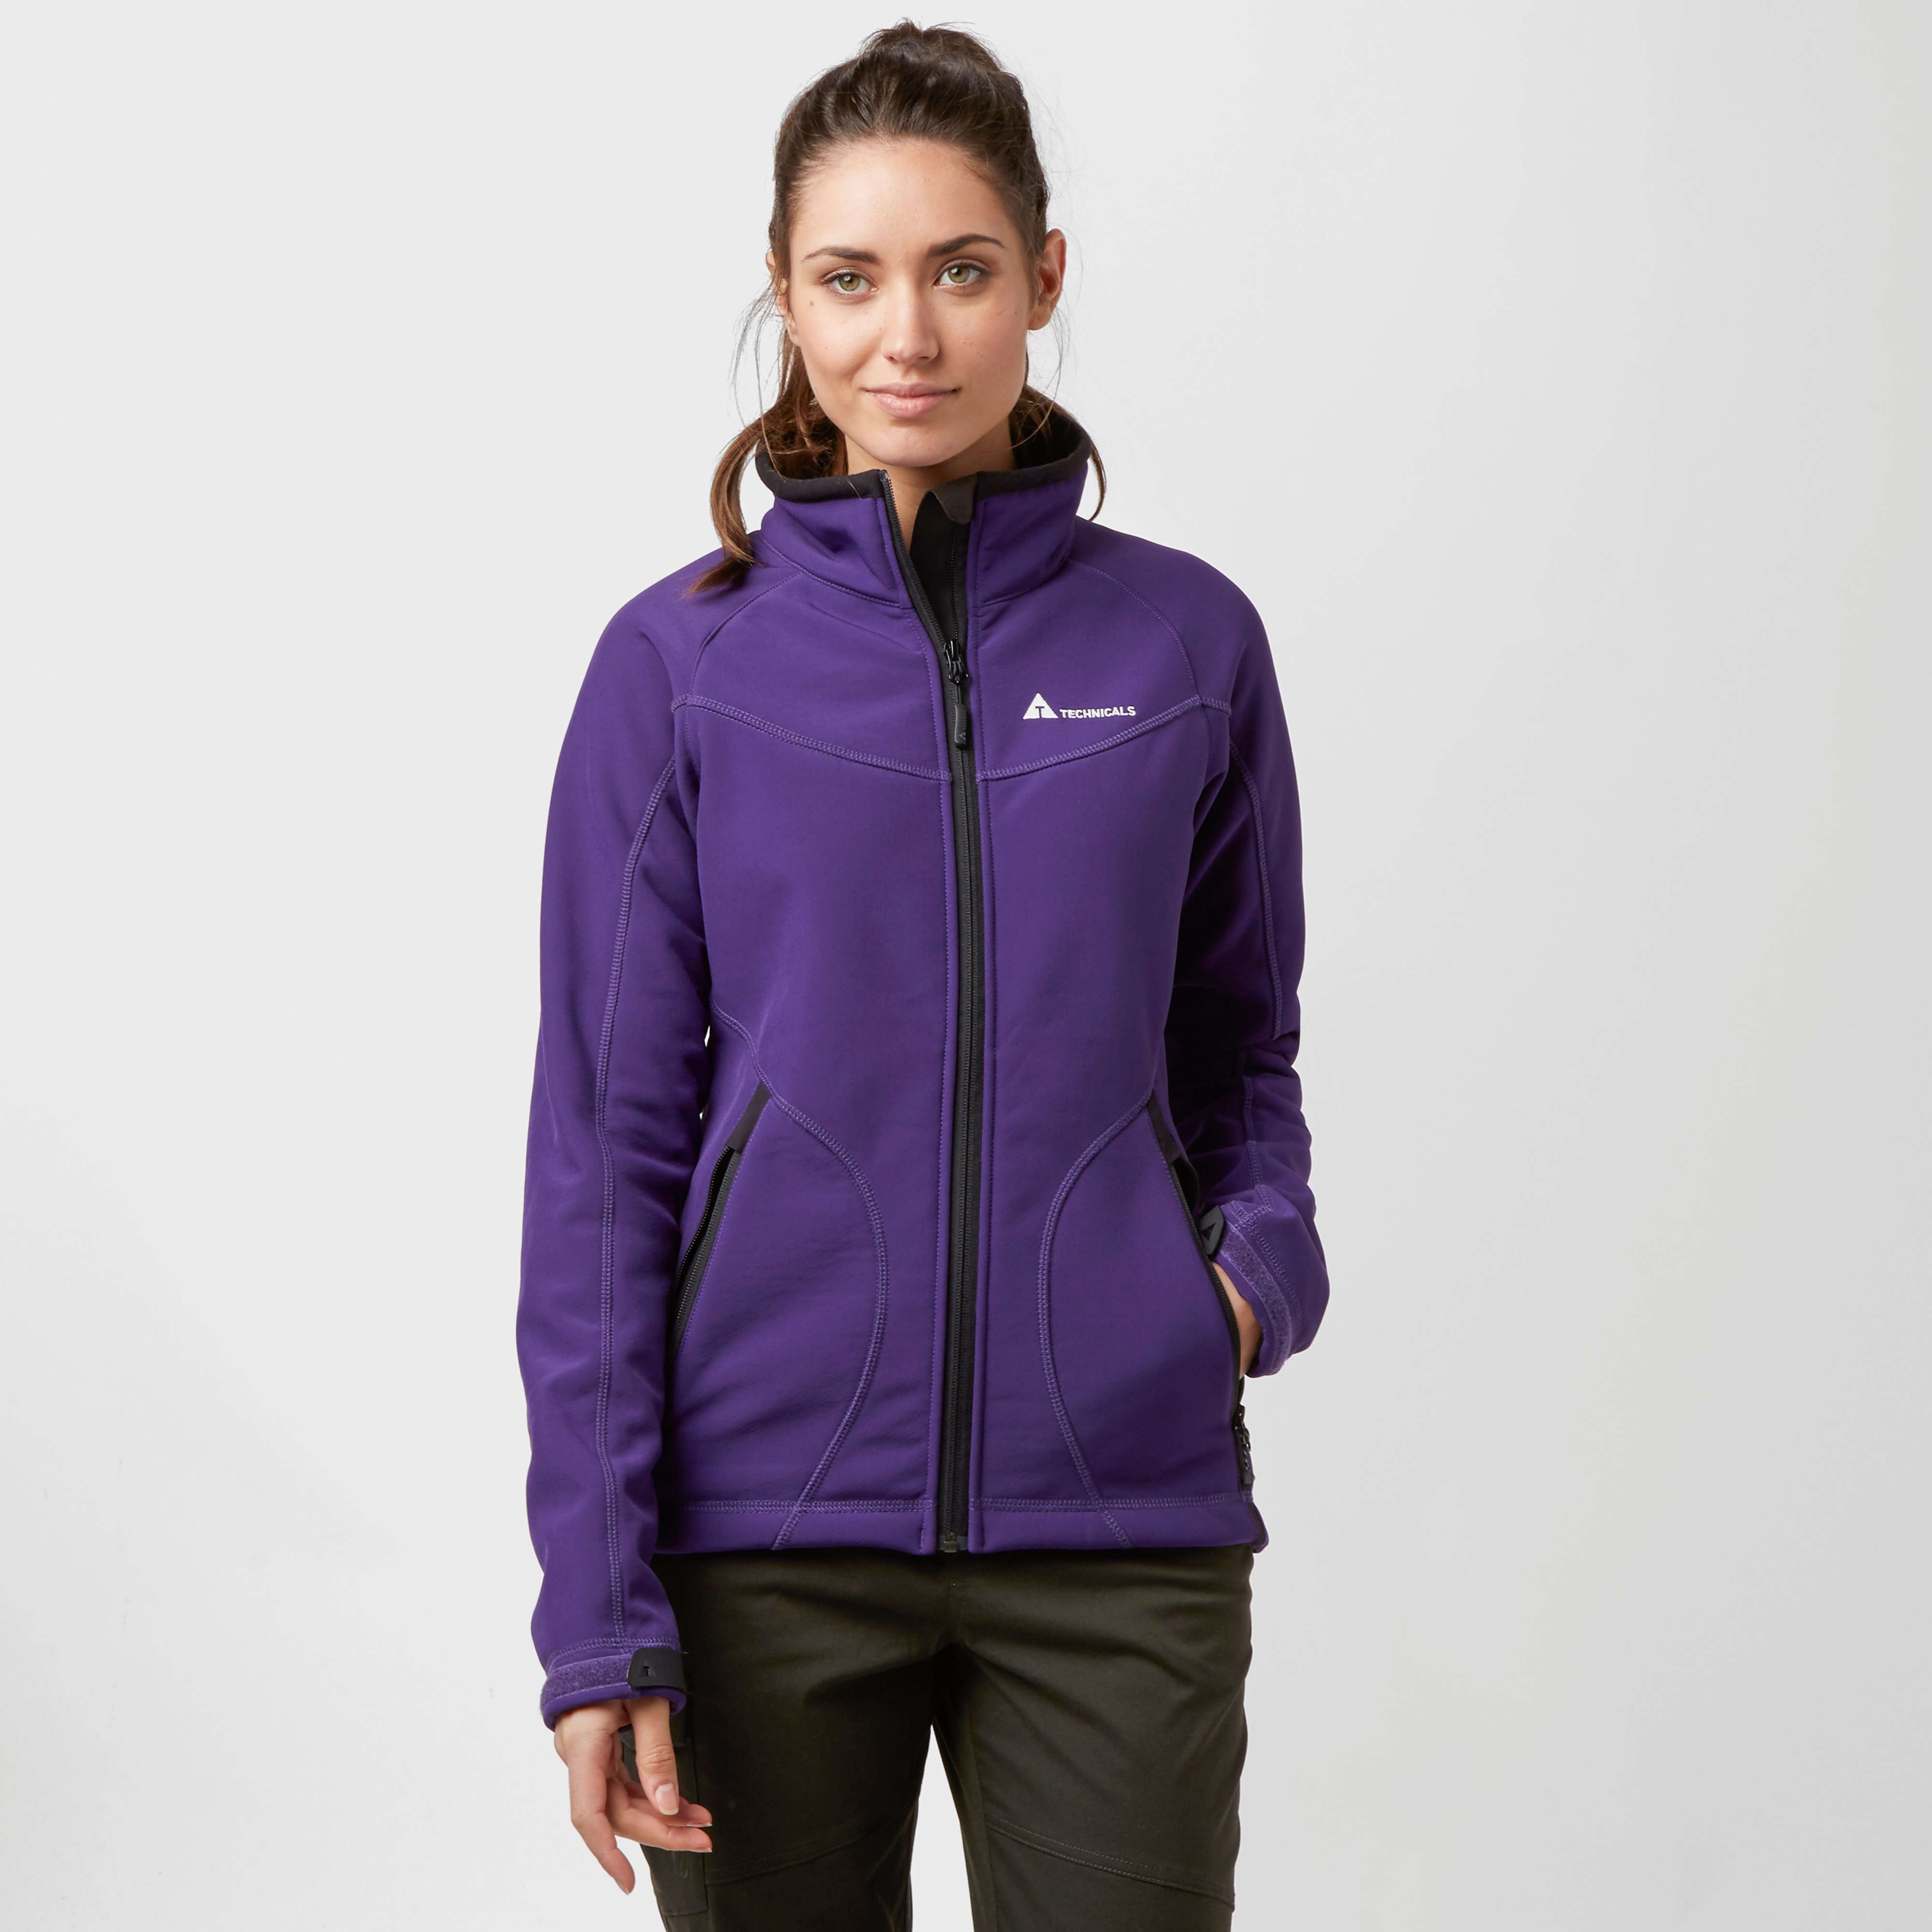 TECHNICALS Women's Proton Softshell Jacket